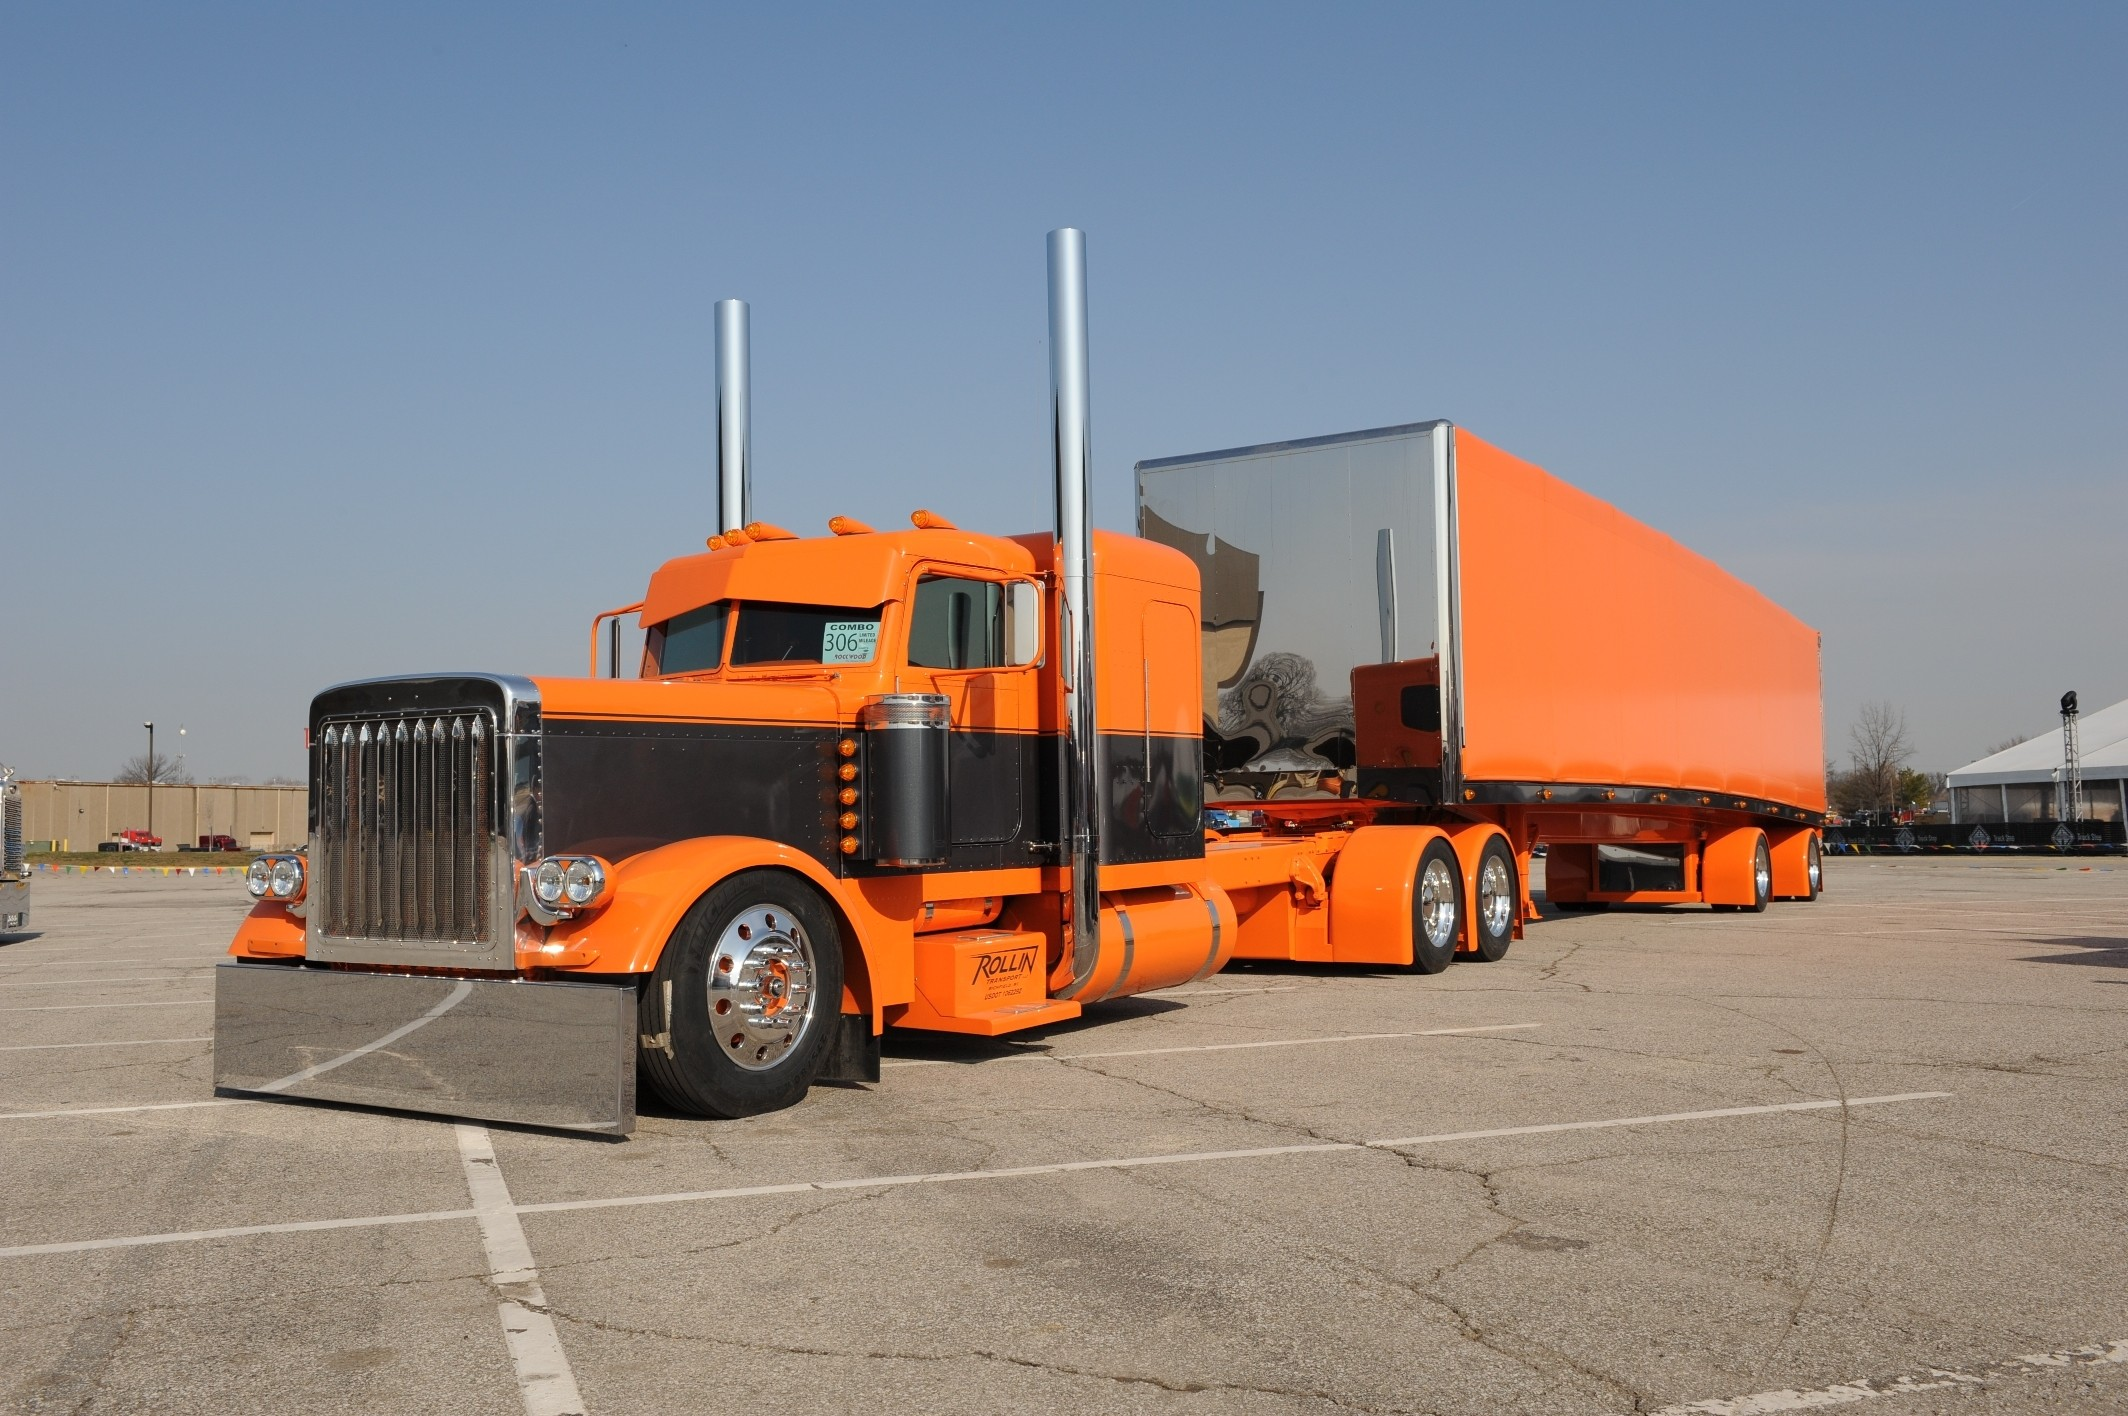 Res: 2128x1416, Wallpapers peterbilt truck custom car pictures and photos other